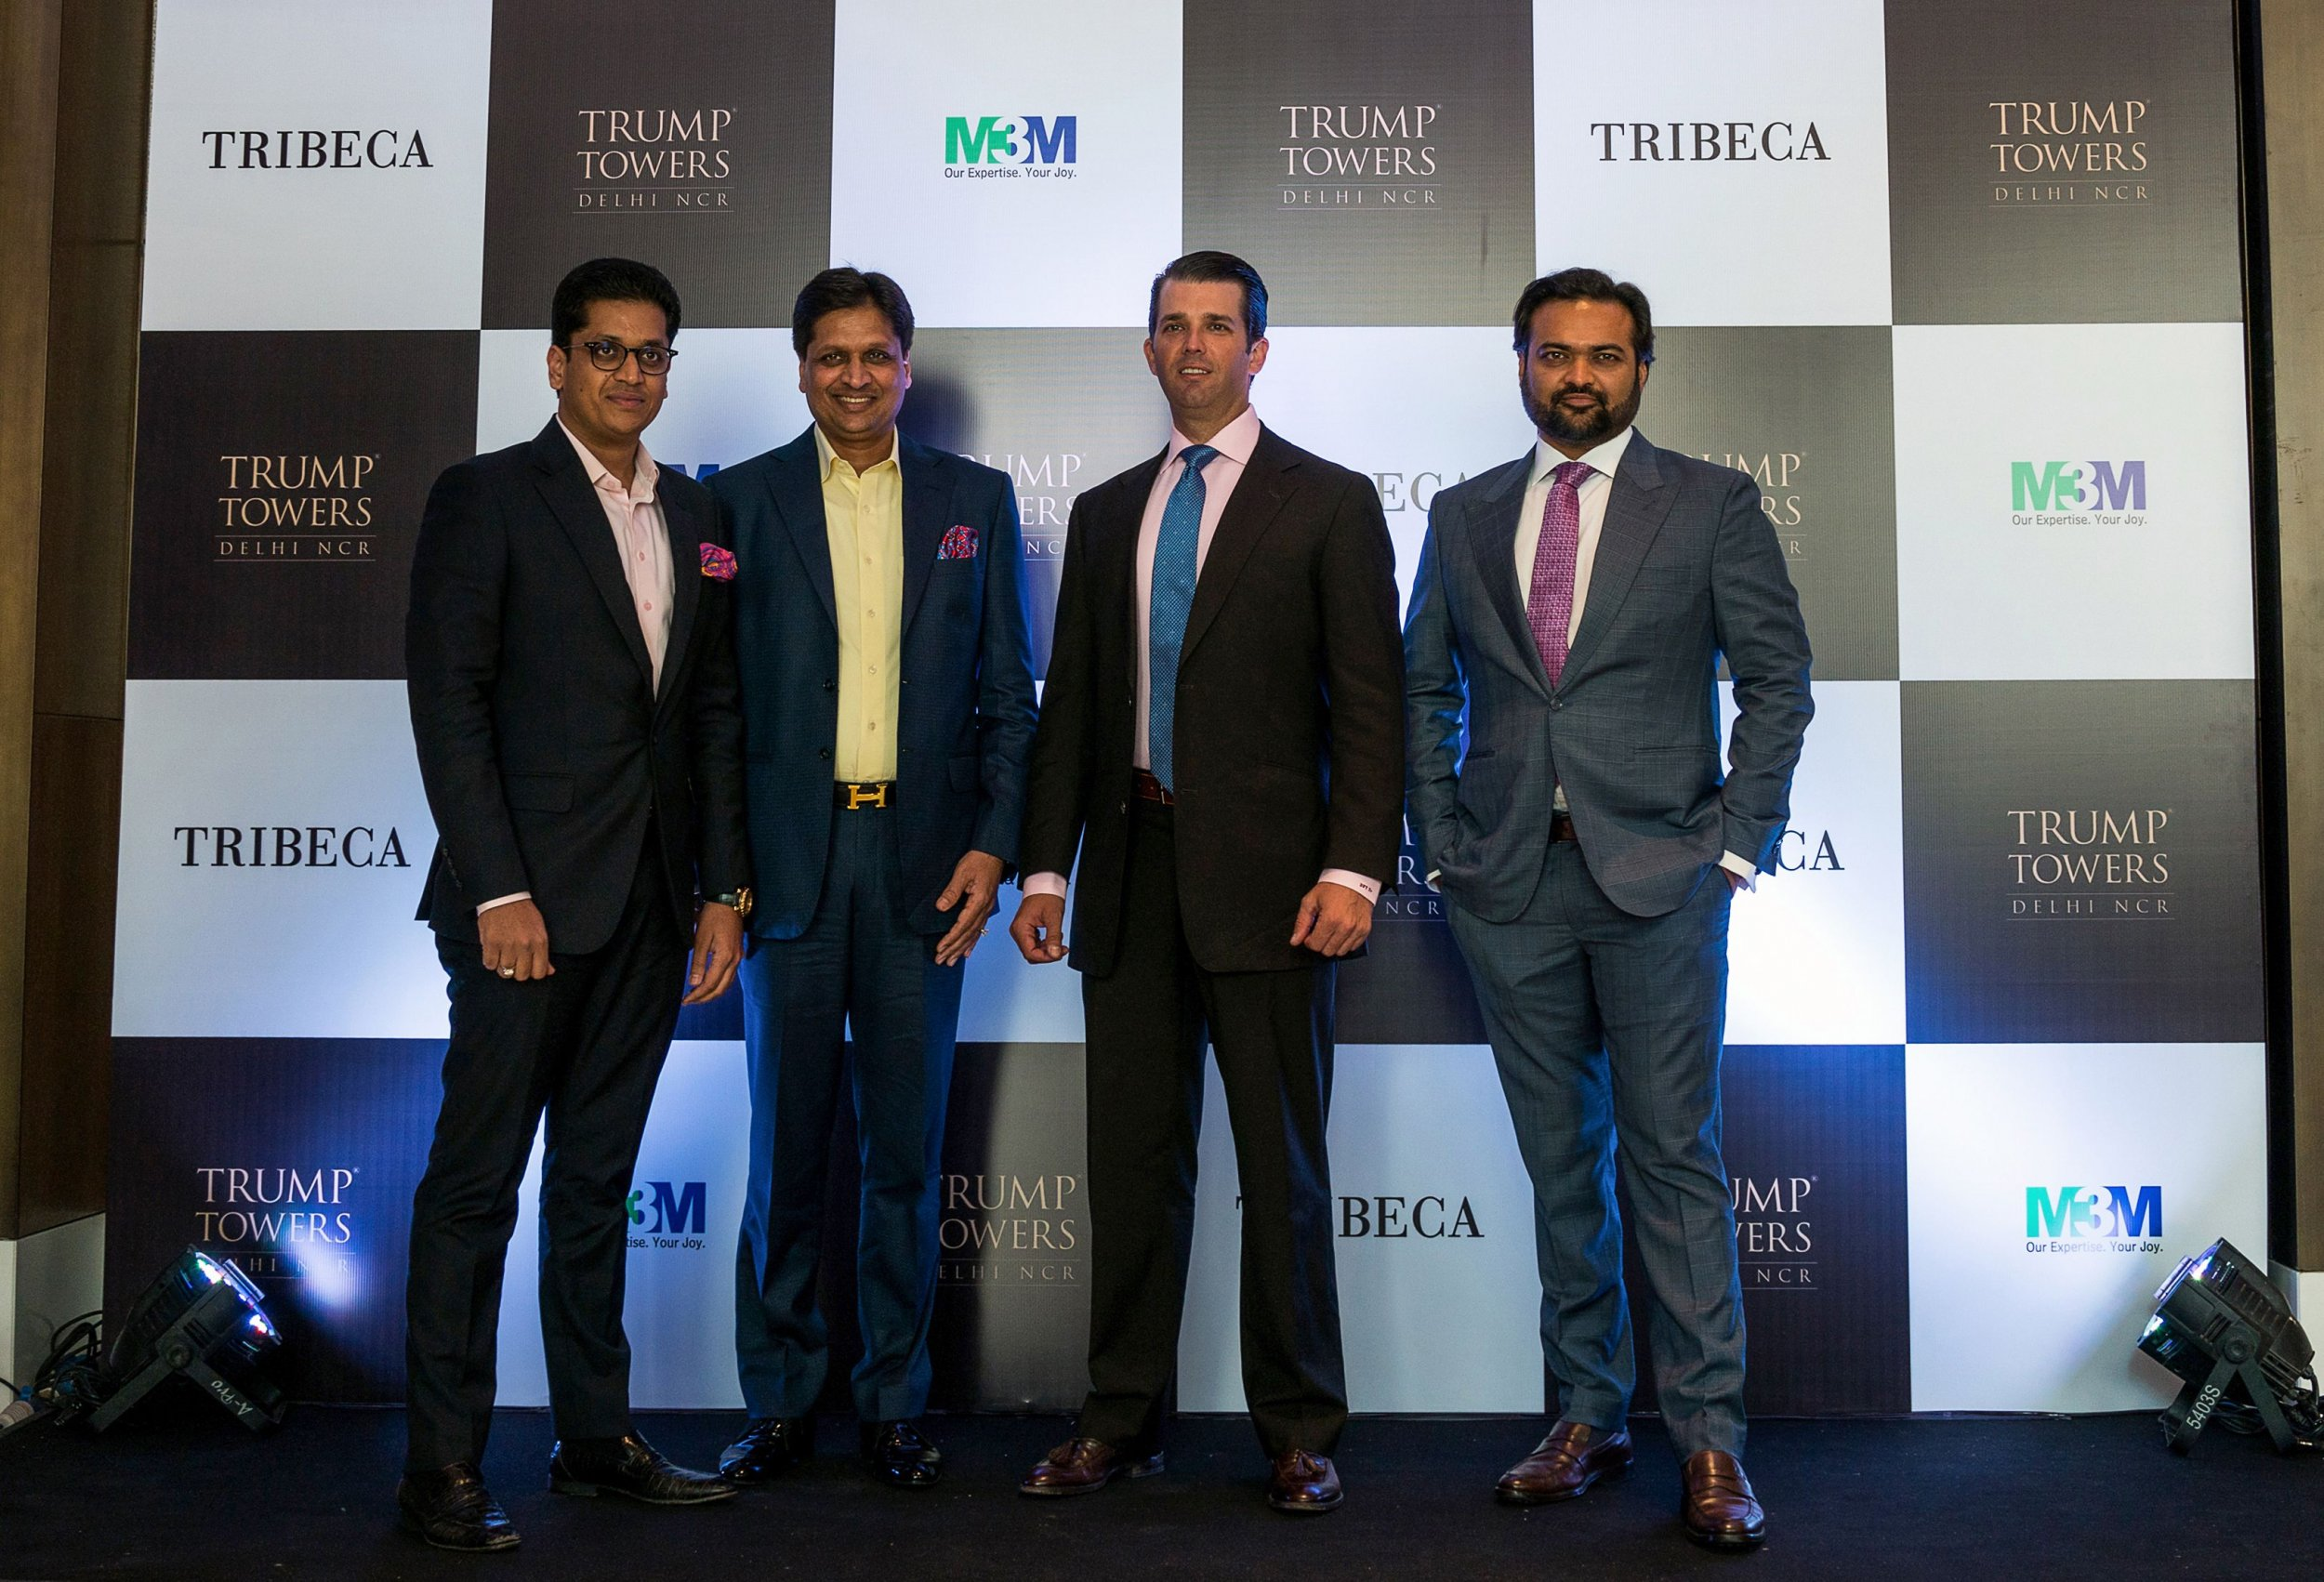 Donald Trump Jr. Cost Taxpayers Nearly $100K in Security Costs During February Trip to India: Report